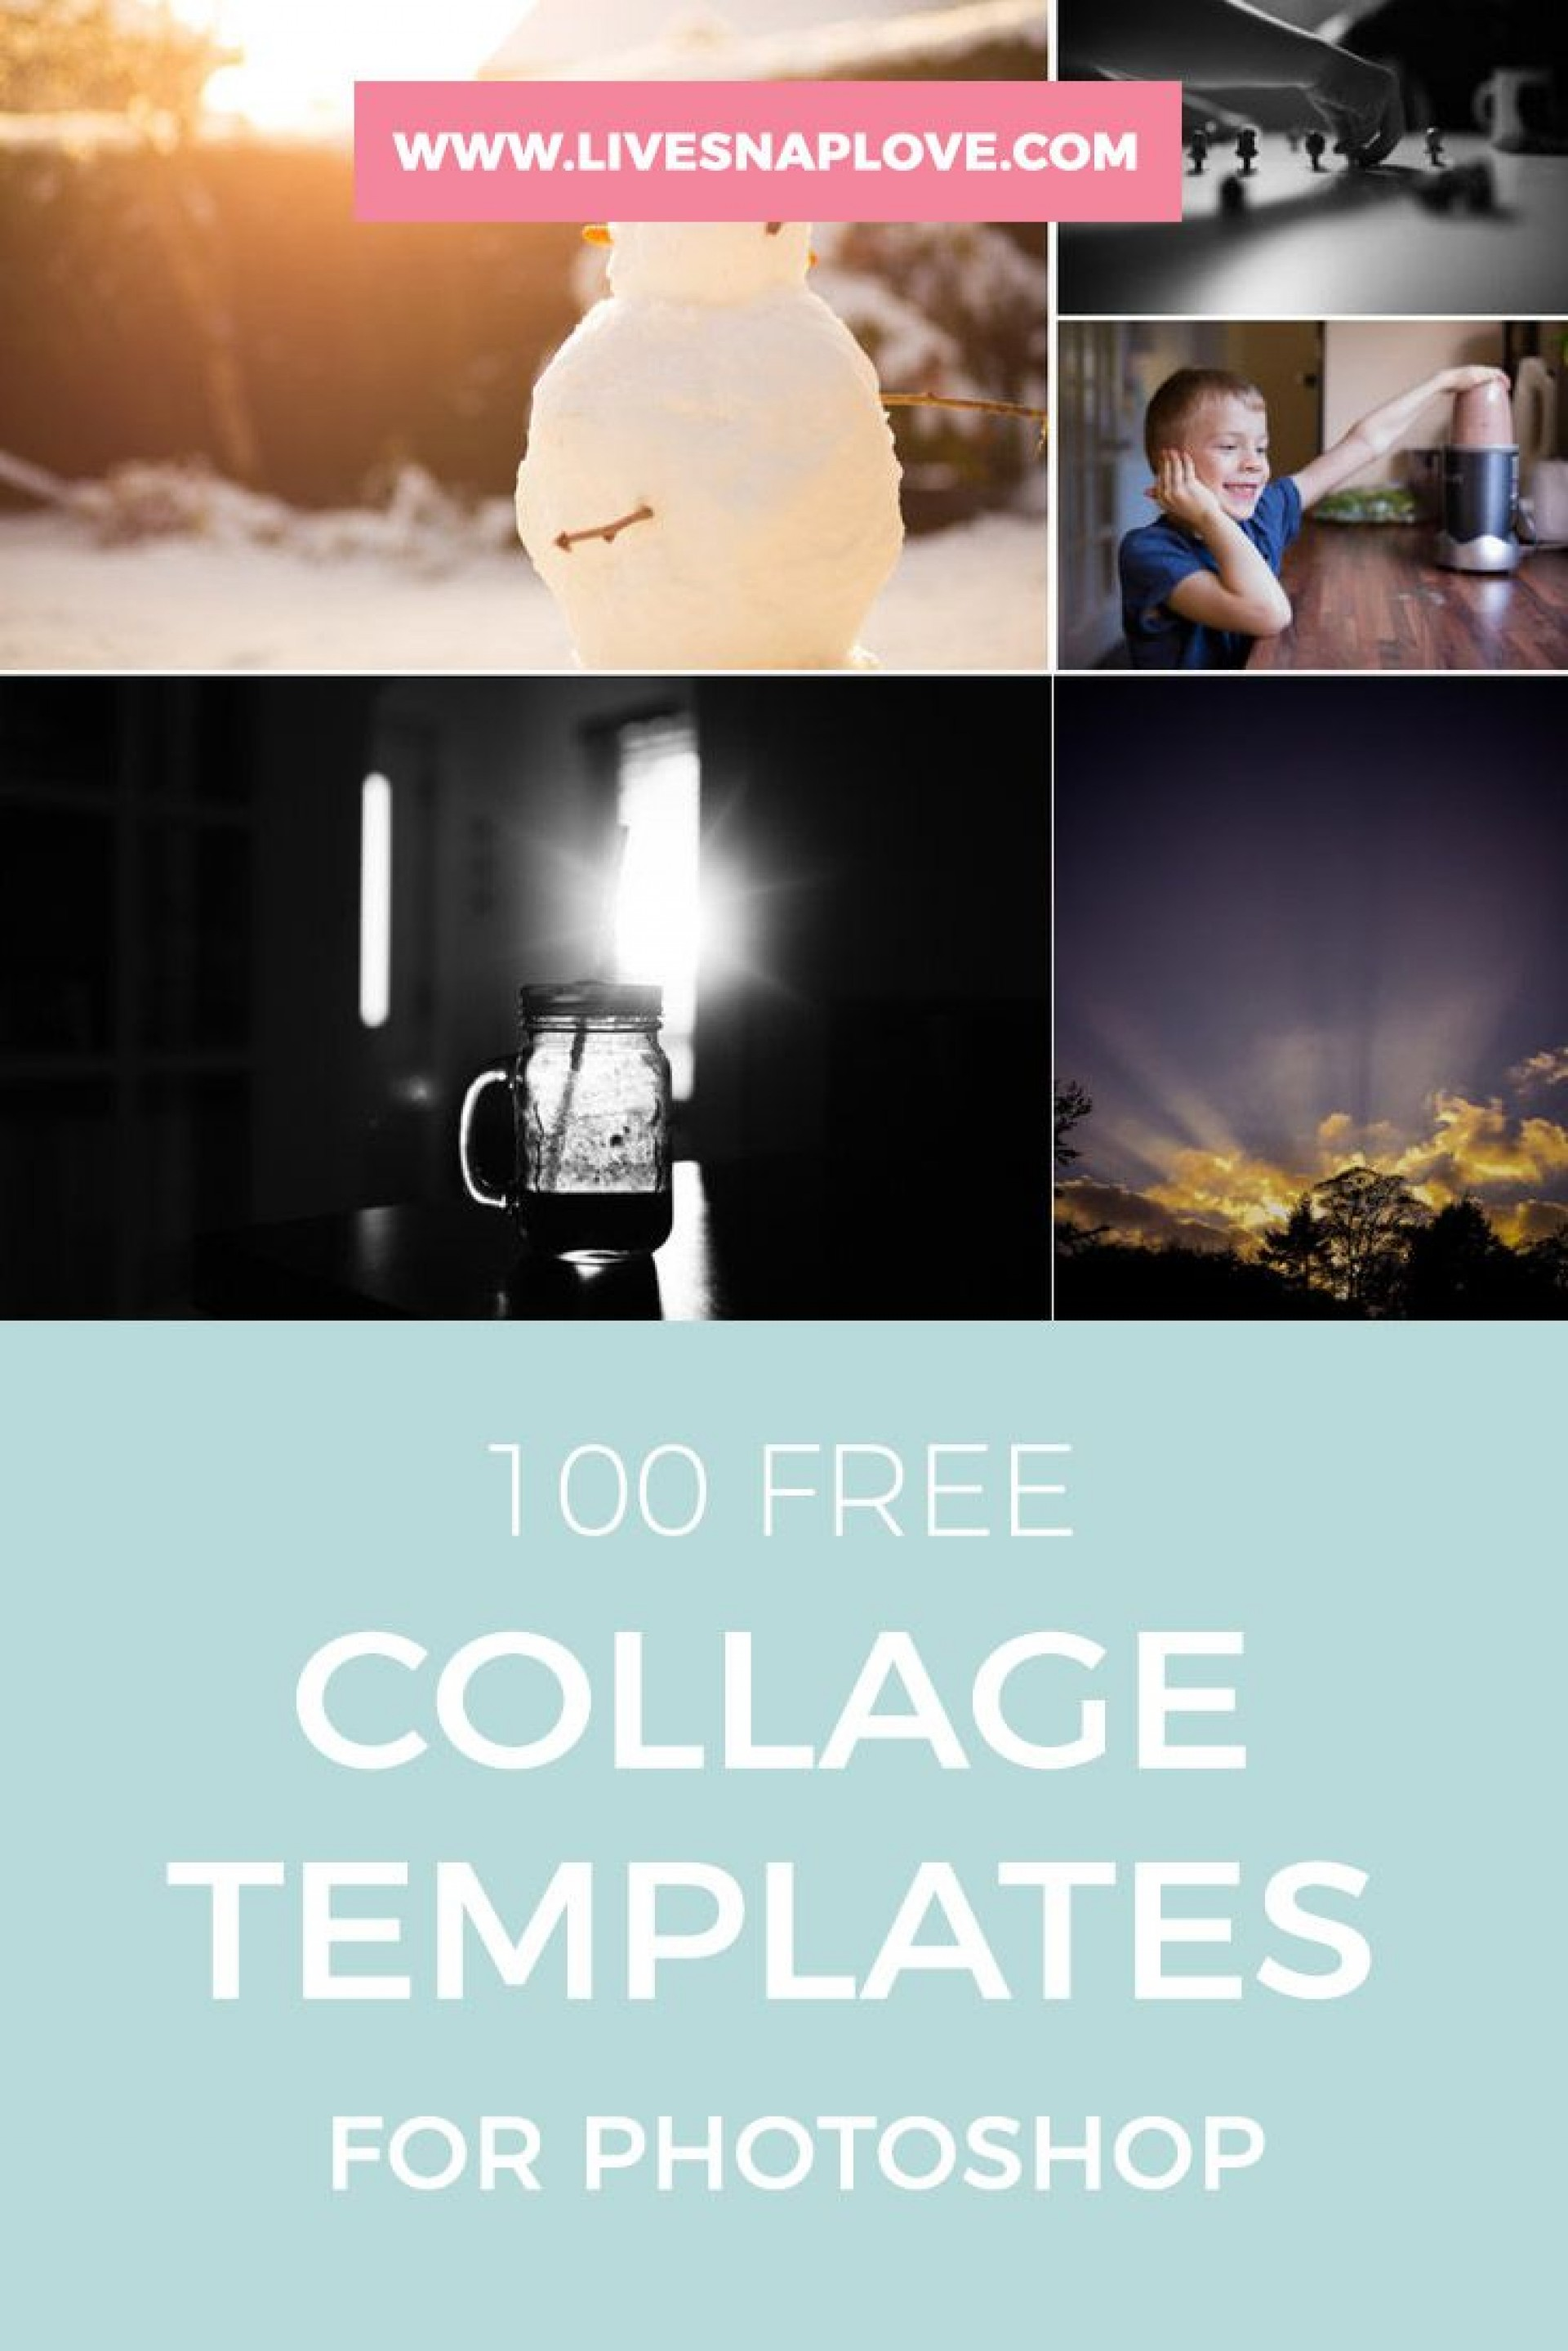 002 Striking Free Photoshop Collage Template Example  Templates Psd Download Photo For Element1920